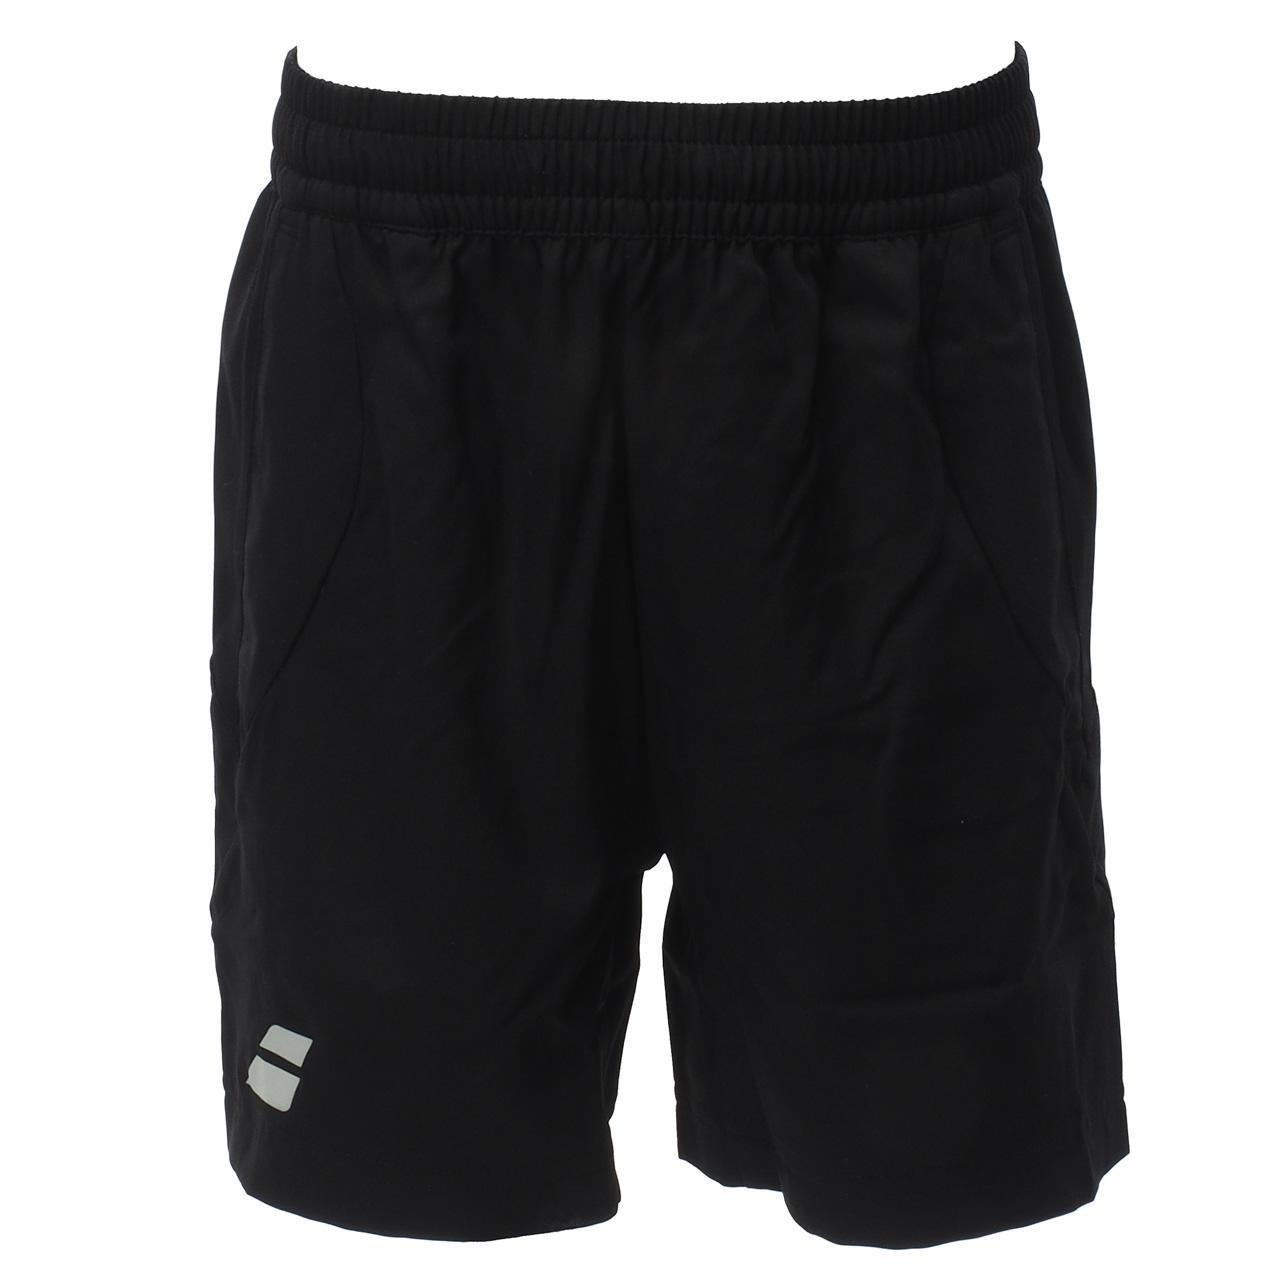 Short-de-tennis-Babolat-Short-core-black-kid-Blanc-70503-Neuf